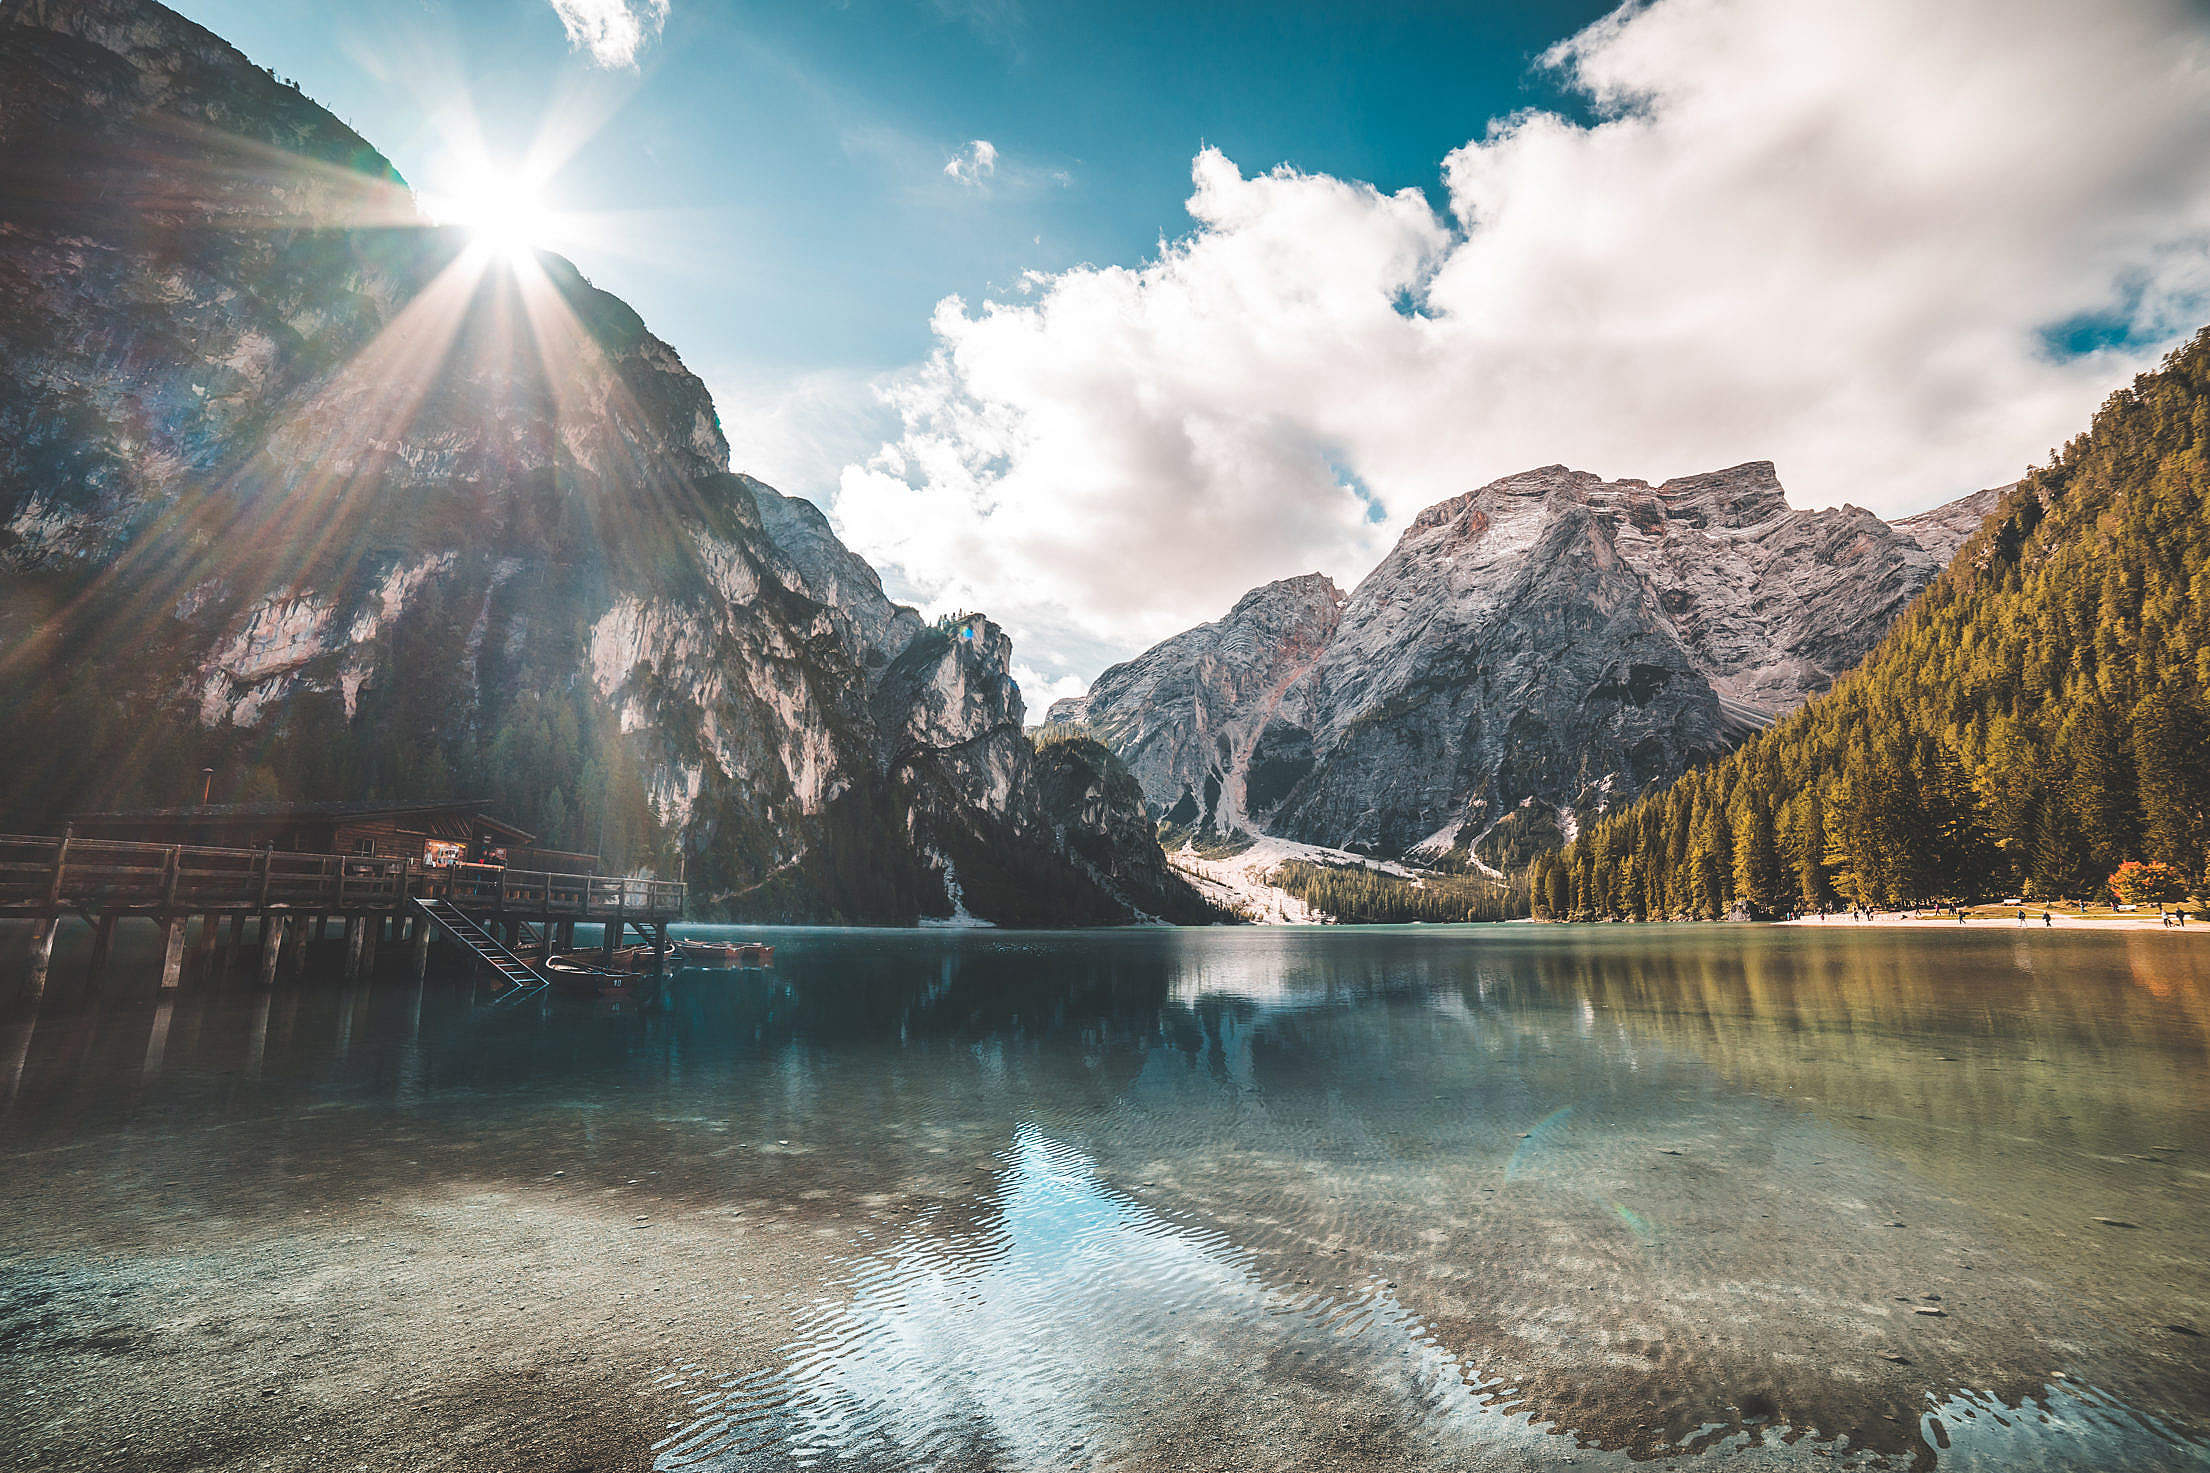 Morning at Lago di Braies Pragser Wildsee Lake in Italy Free Stock Photo